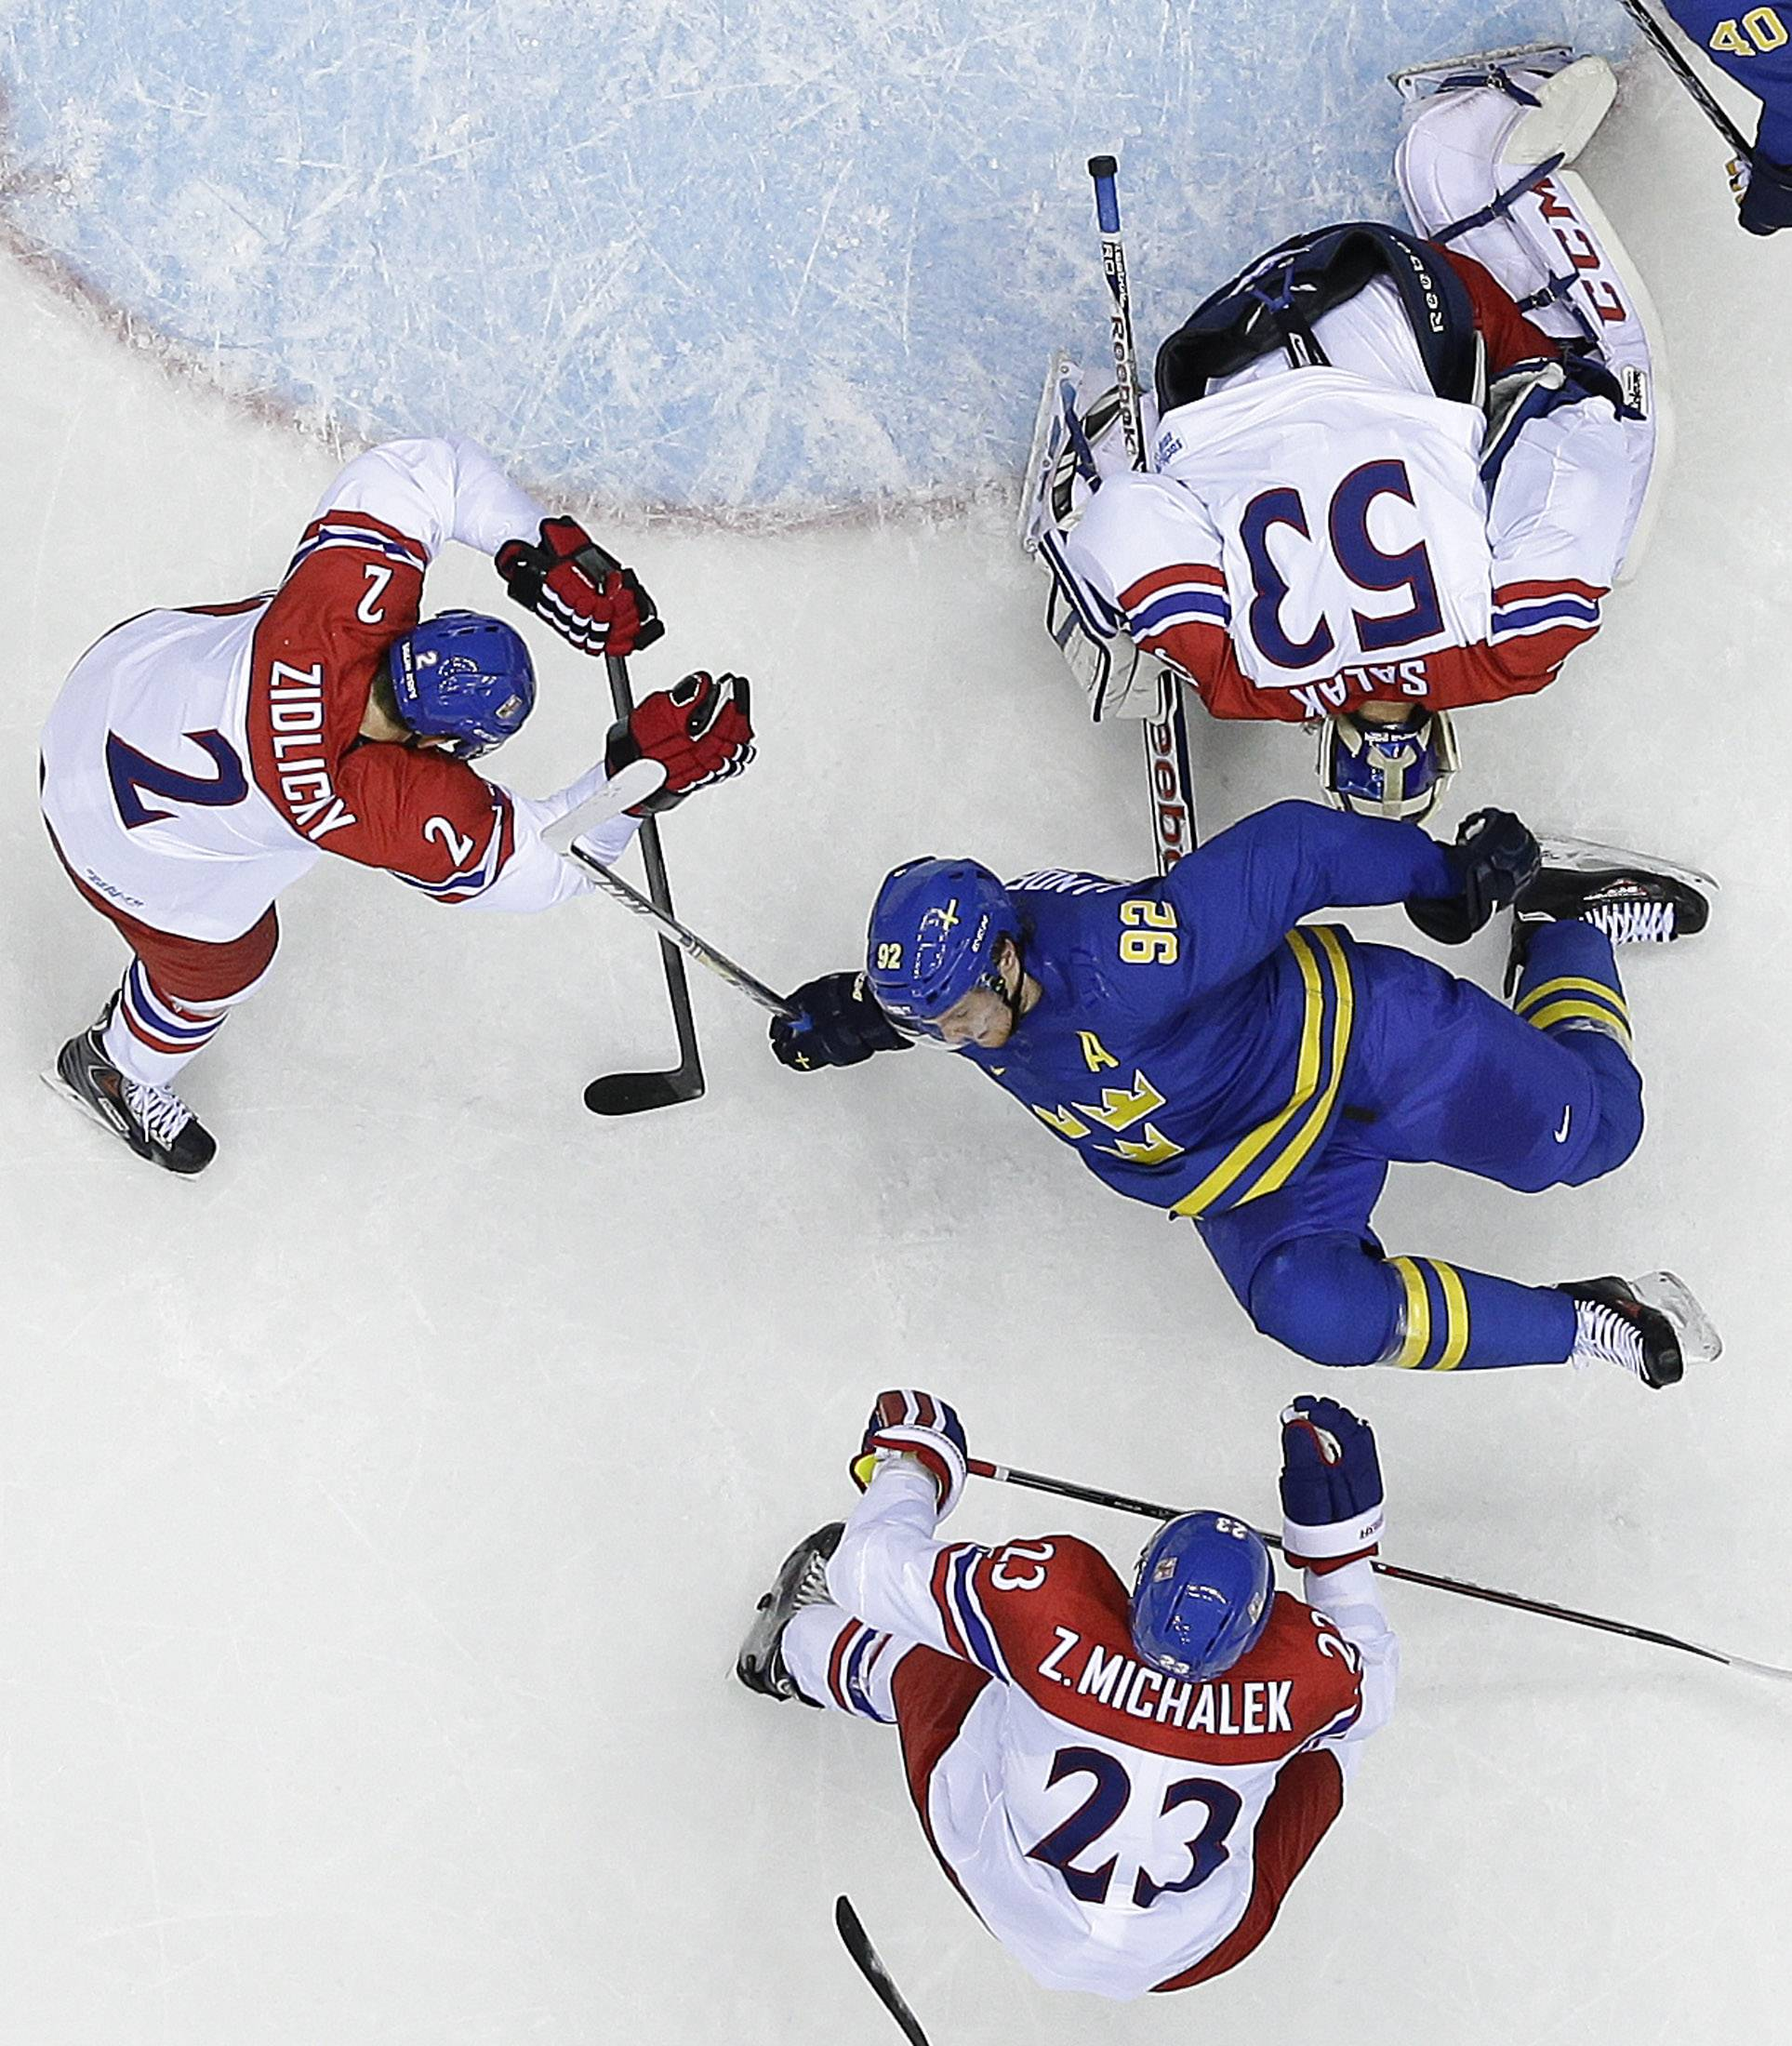 Sweden forward Gabriel Landeskog trips against the Czech Republic in the second period.